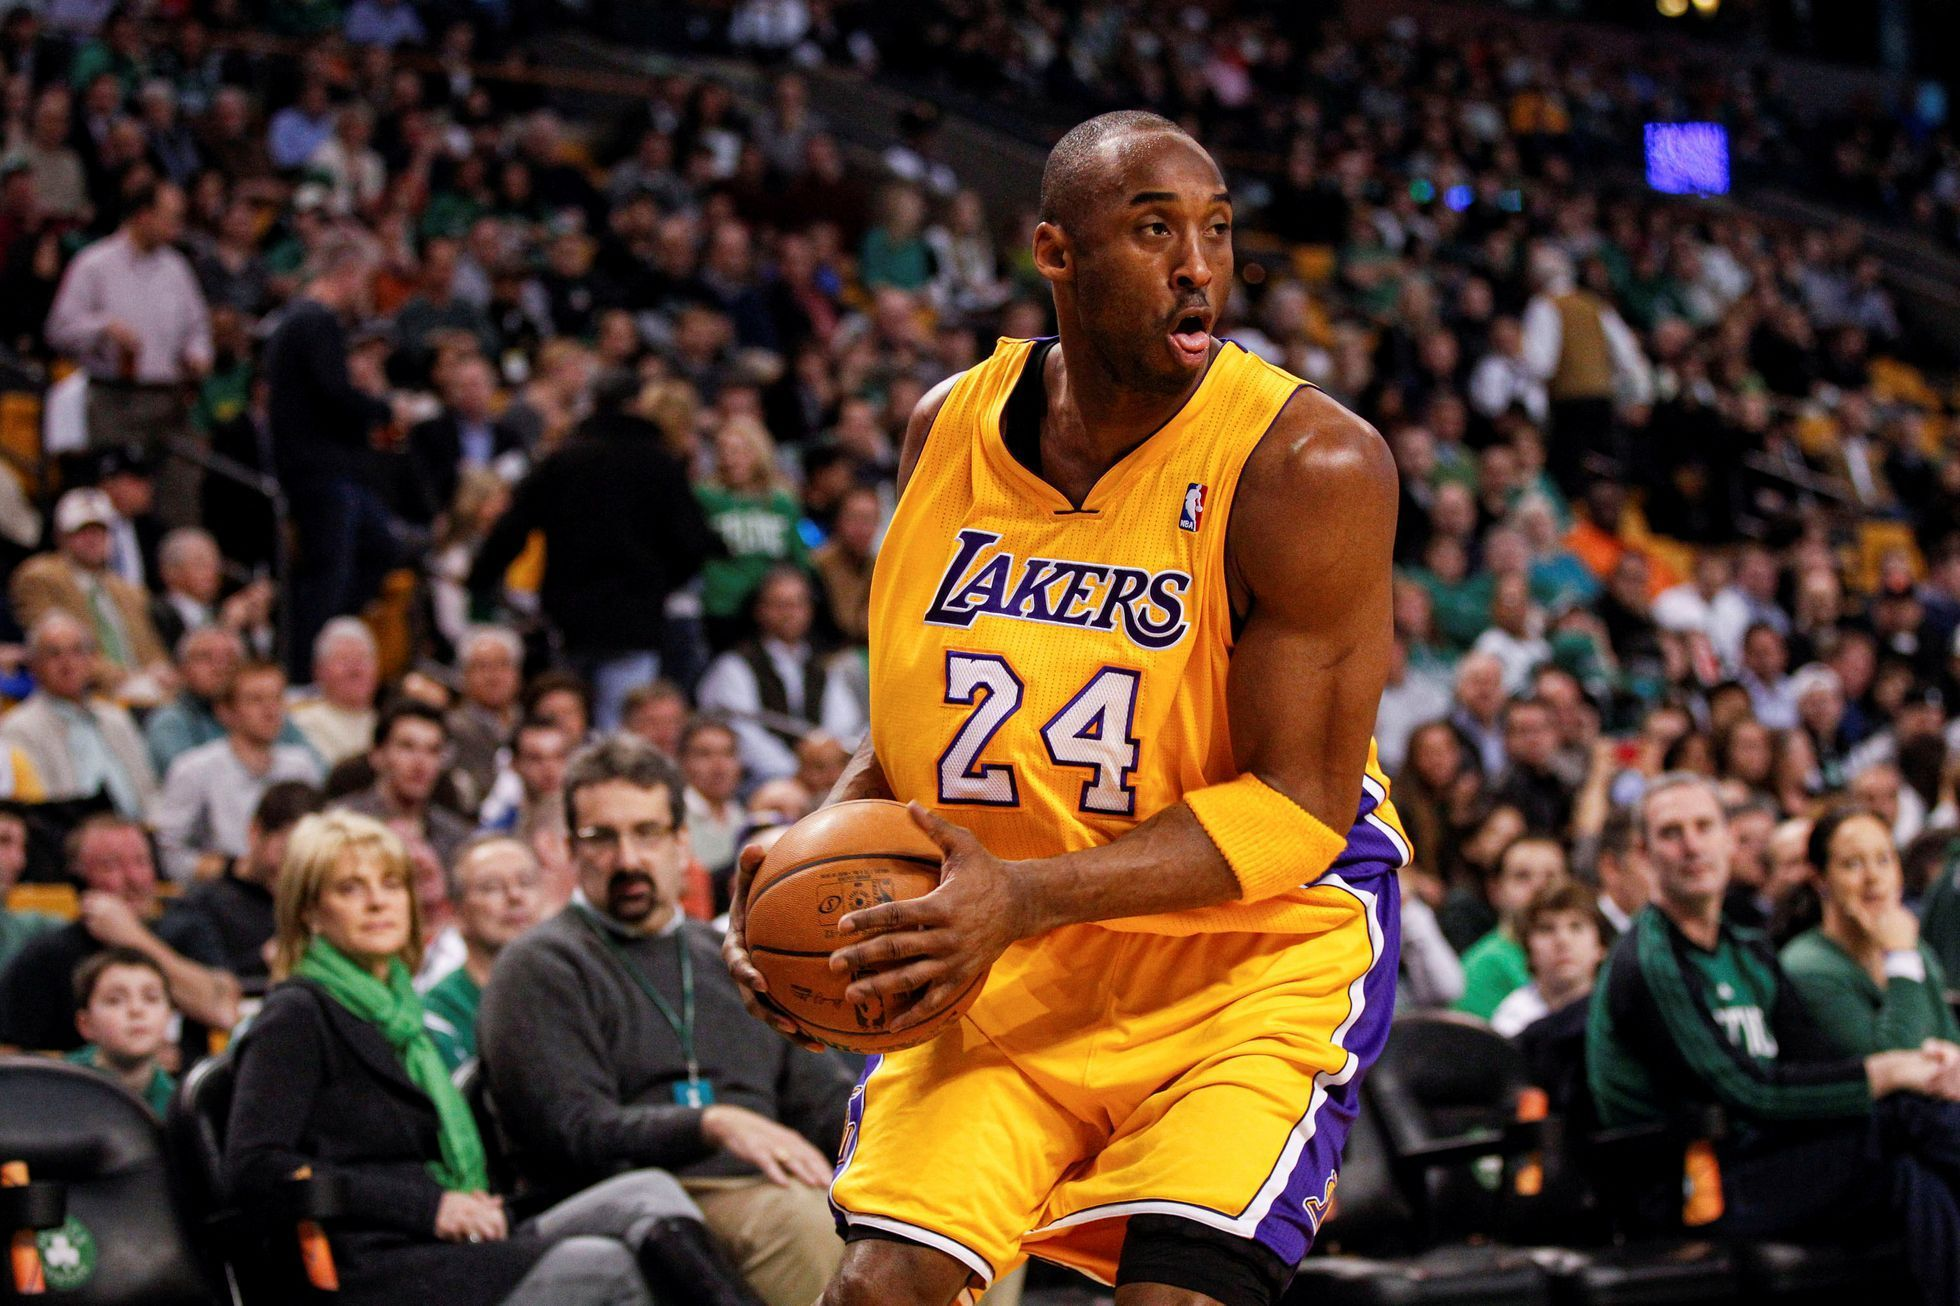 FILE PHOTO: NBA: Los Angeles Lakers at Boston Celtics